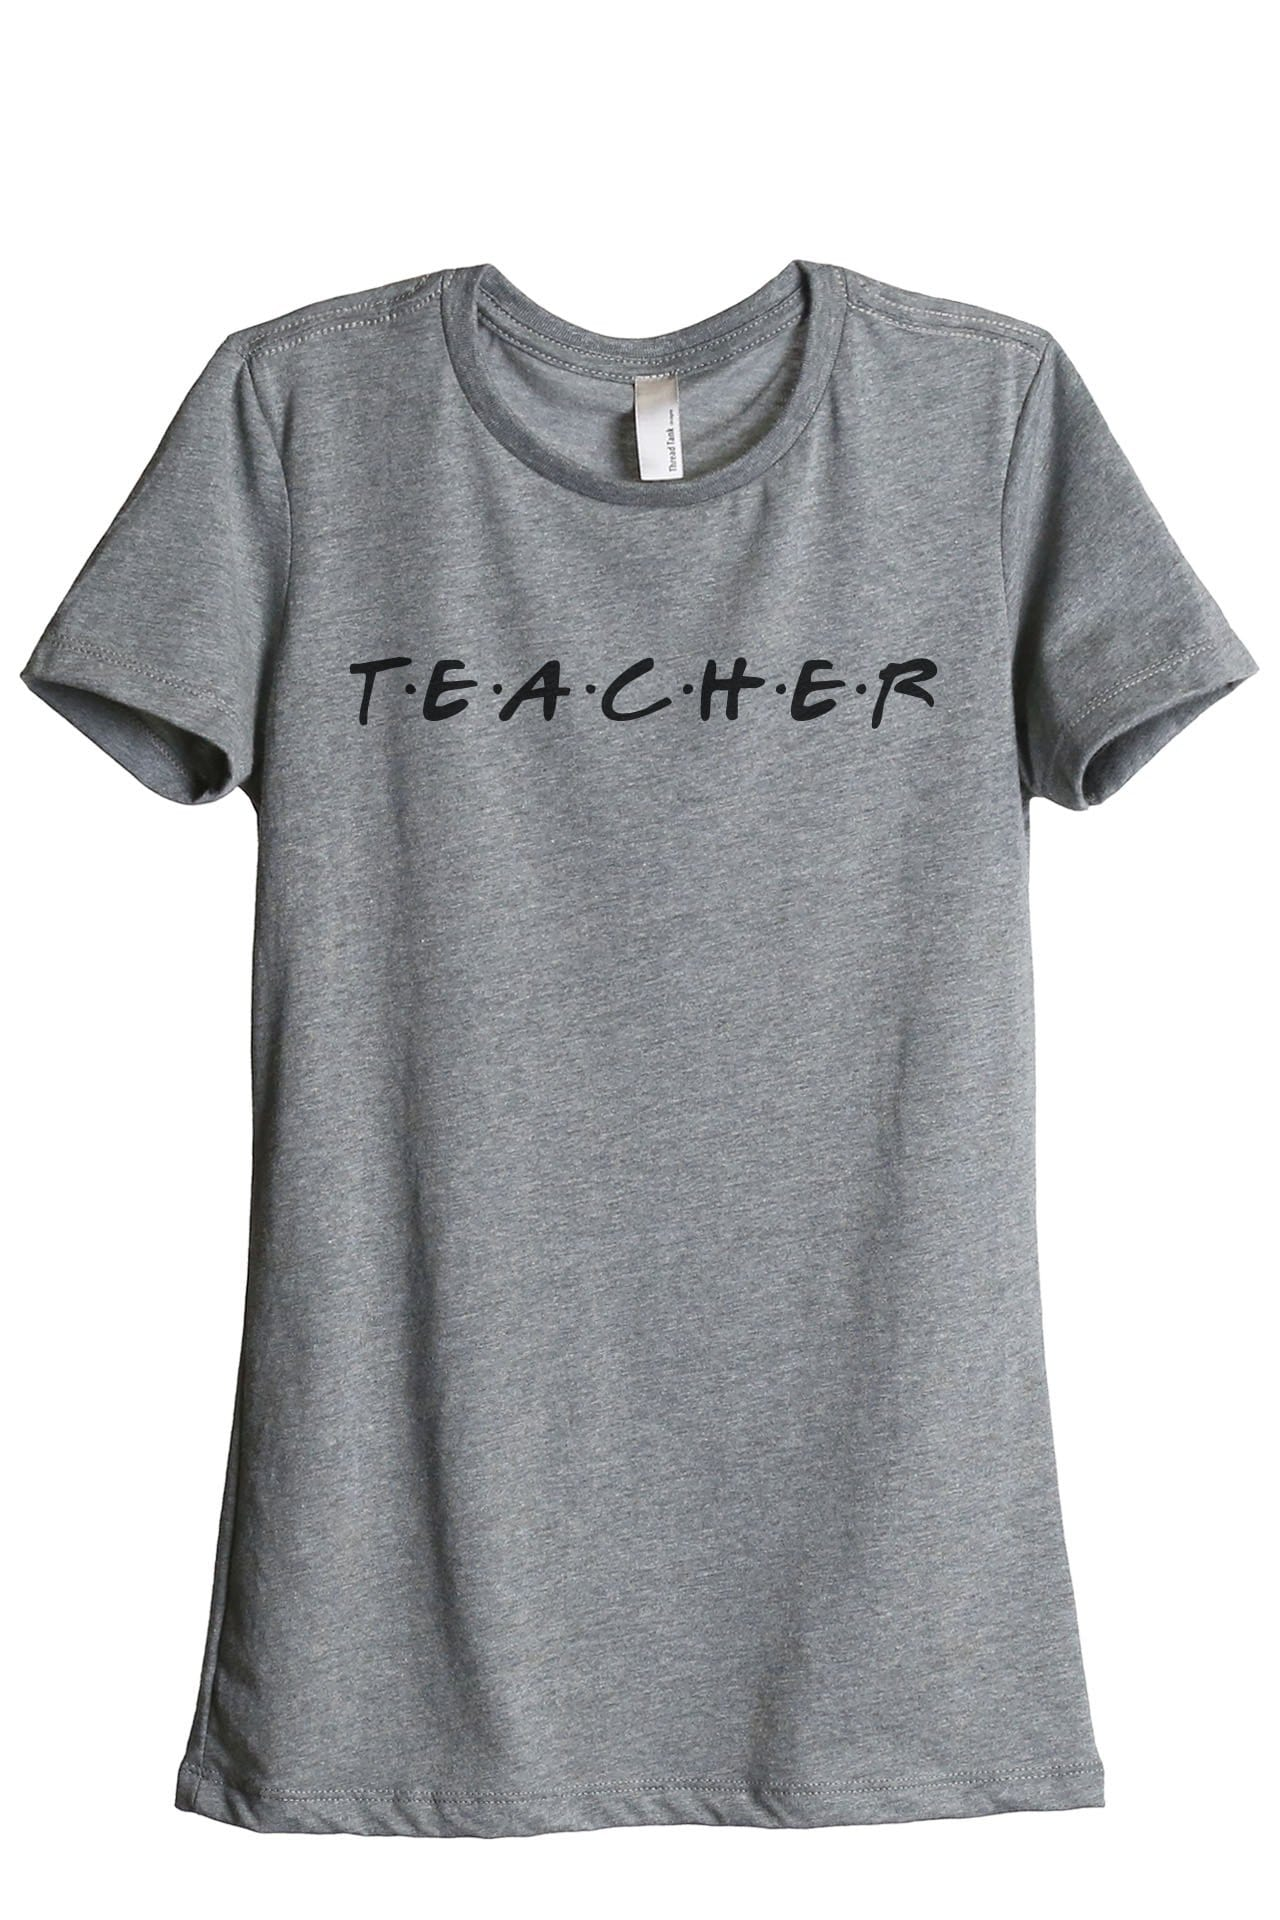 Teacher Friends Women's Relaxed Crewneck T-Shirt Top Tee Heather Grey